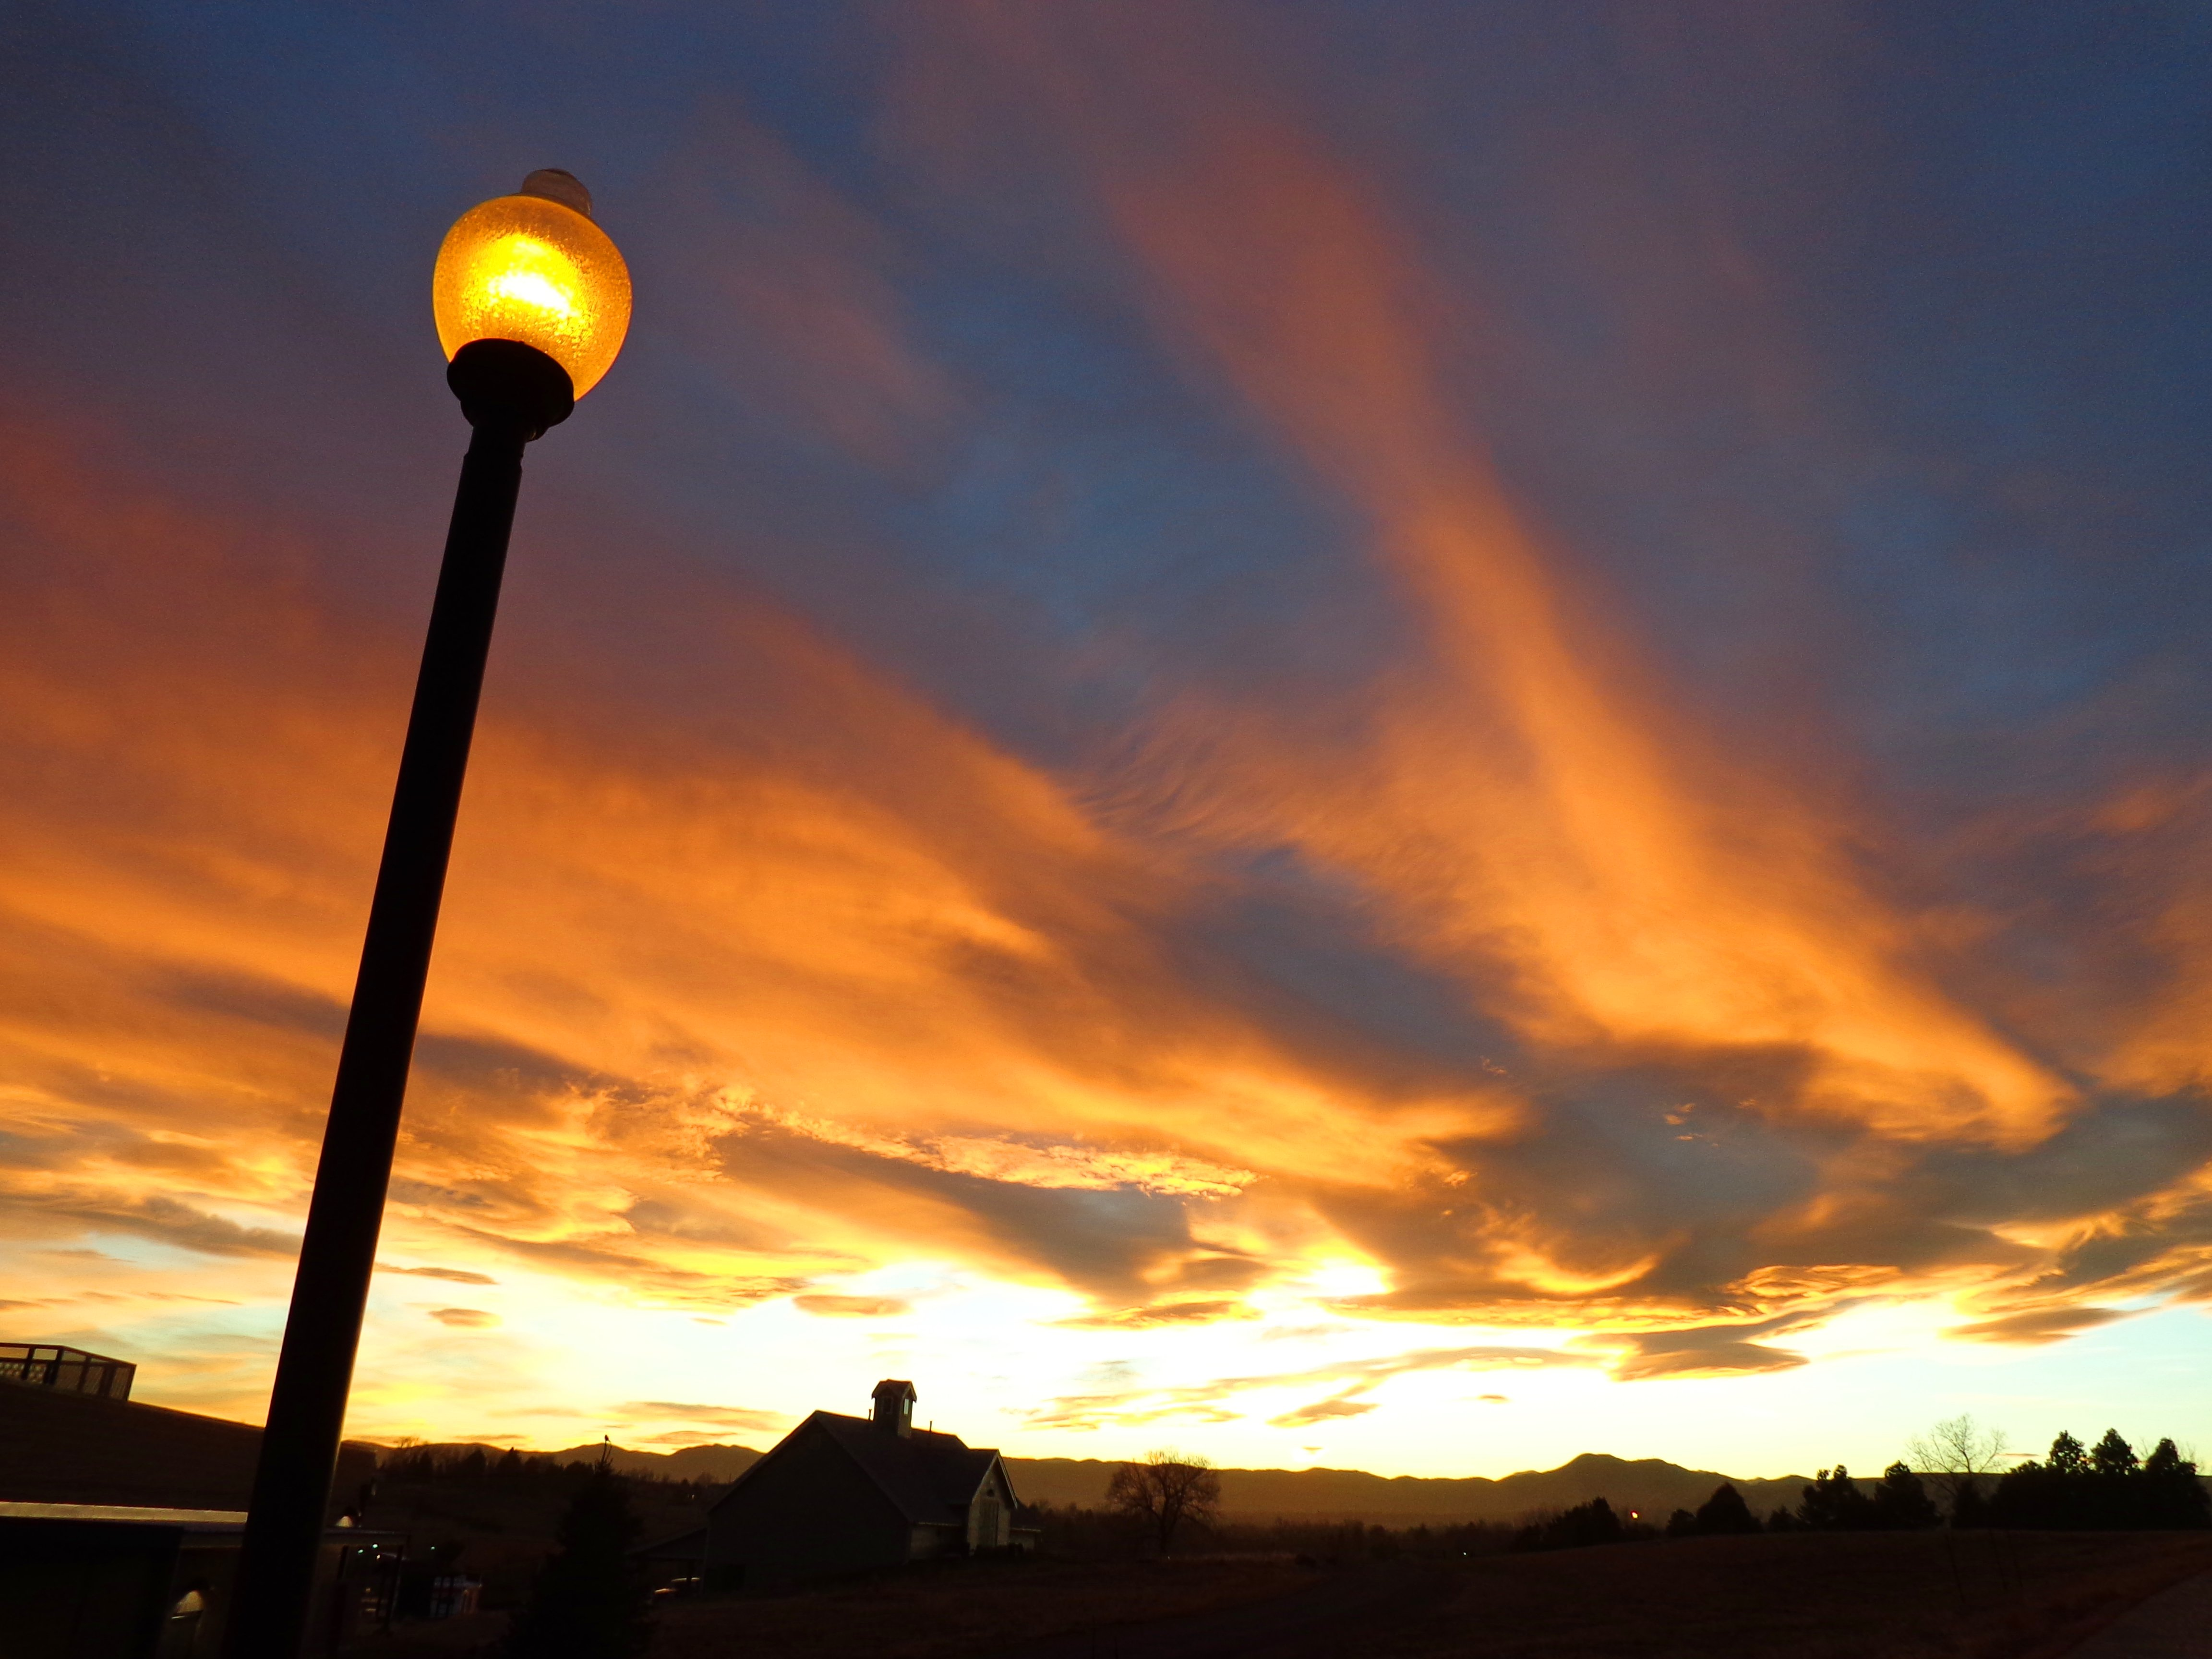 Lamp Post clipart public Lamp Sunset Domain Post with